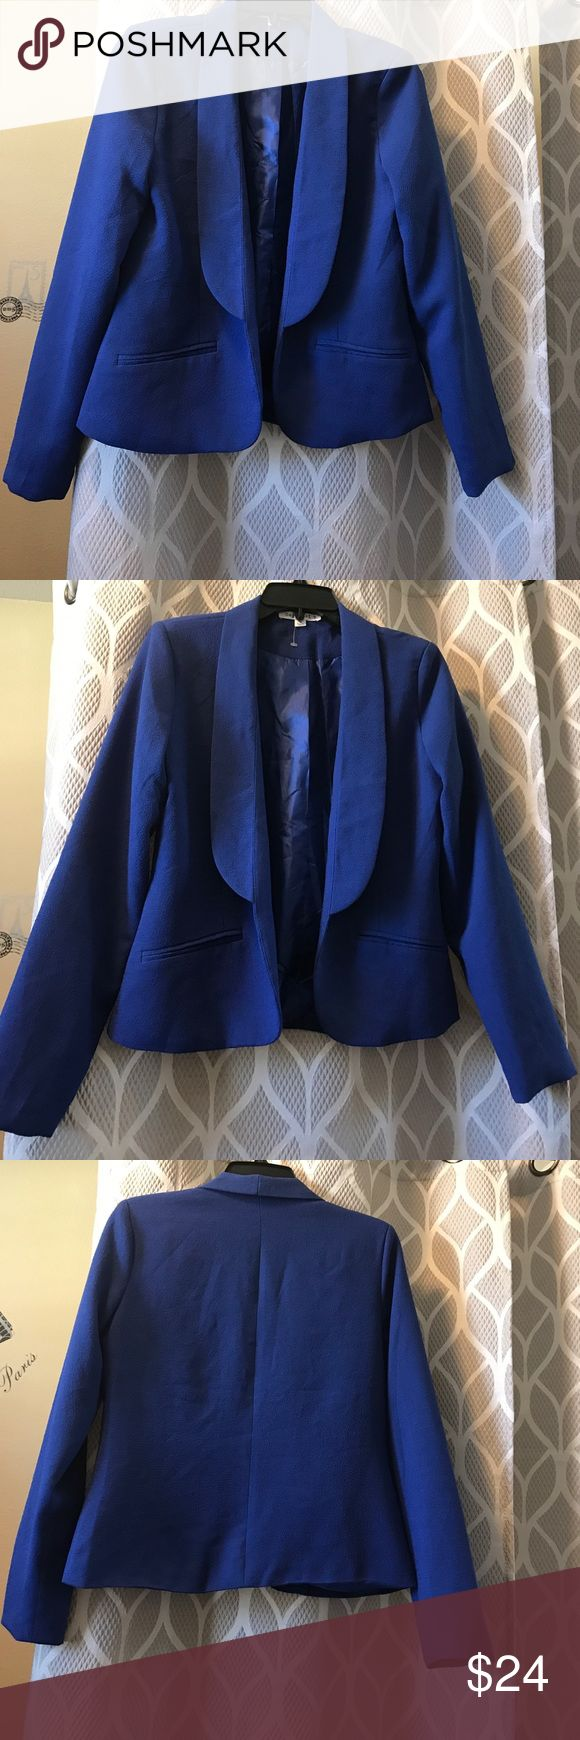 Beautiful Royal blue blazer New no tags royal blue blazer never worn Nordstrom Jackets & Coats Blazers